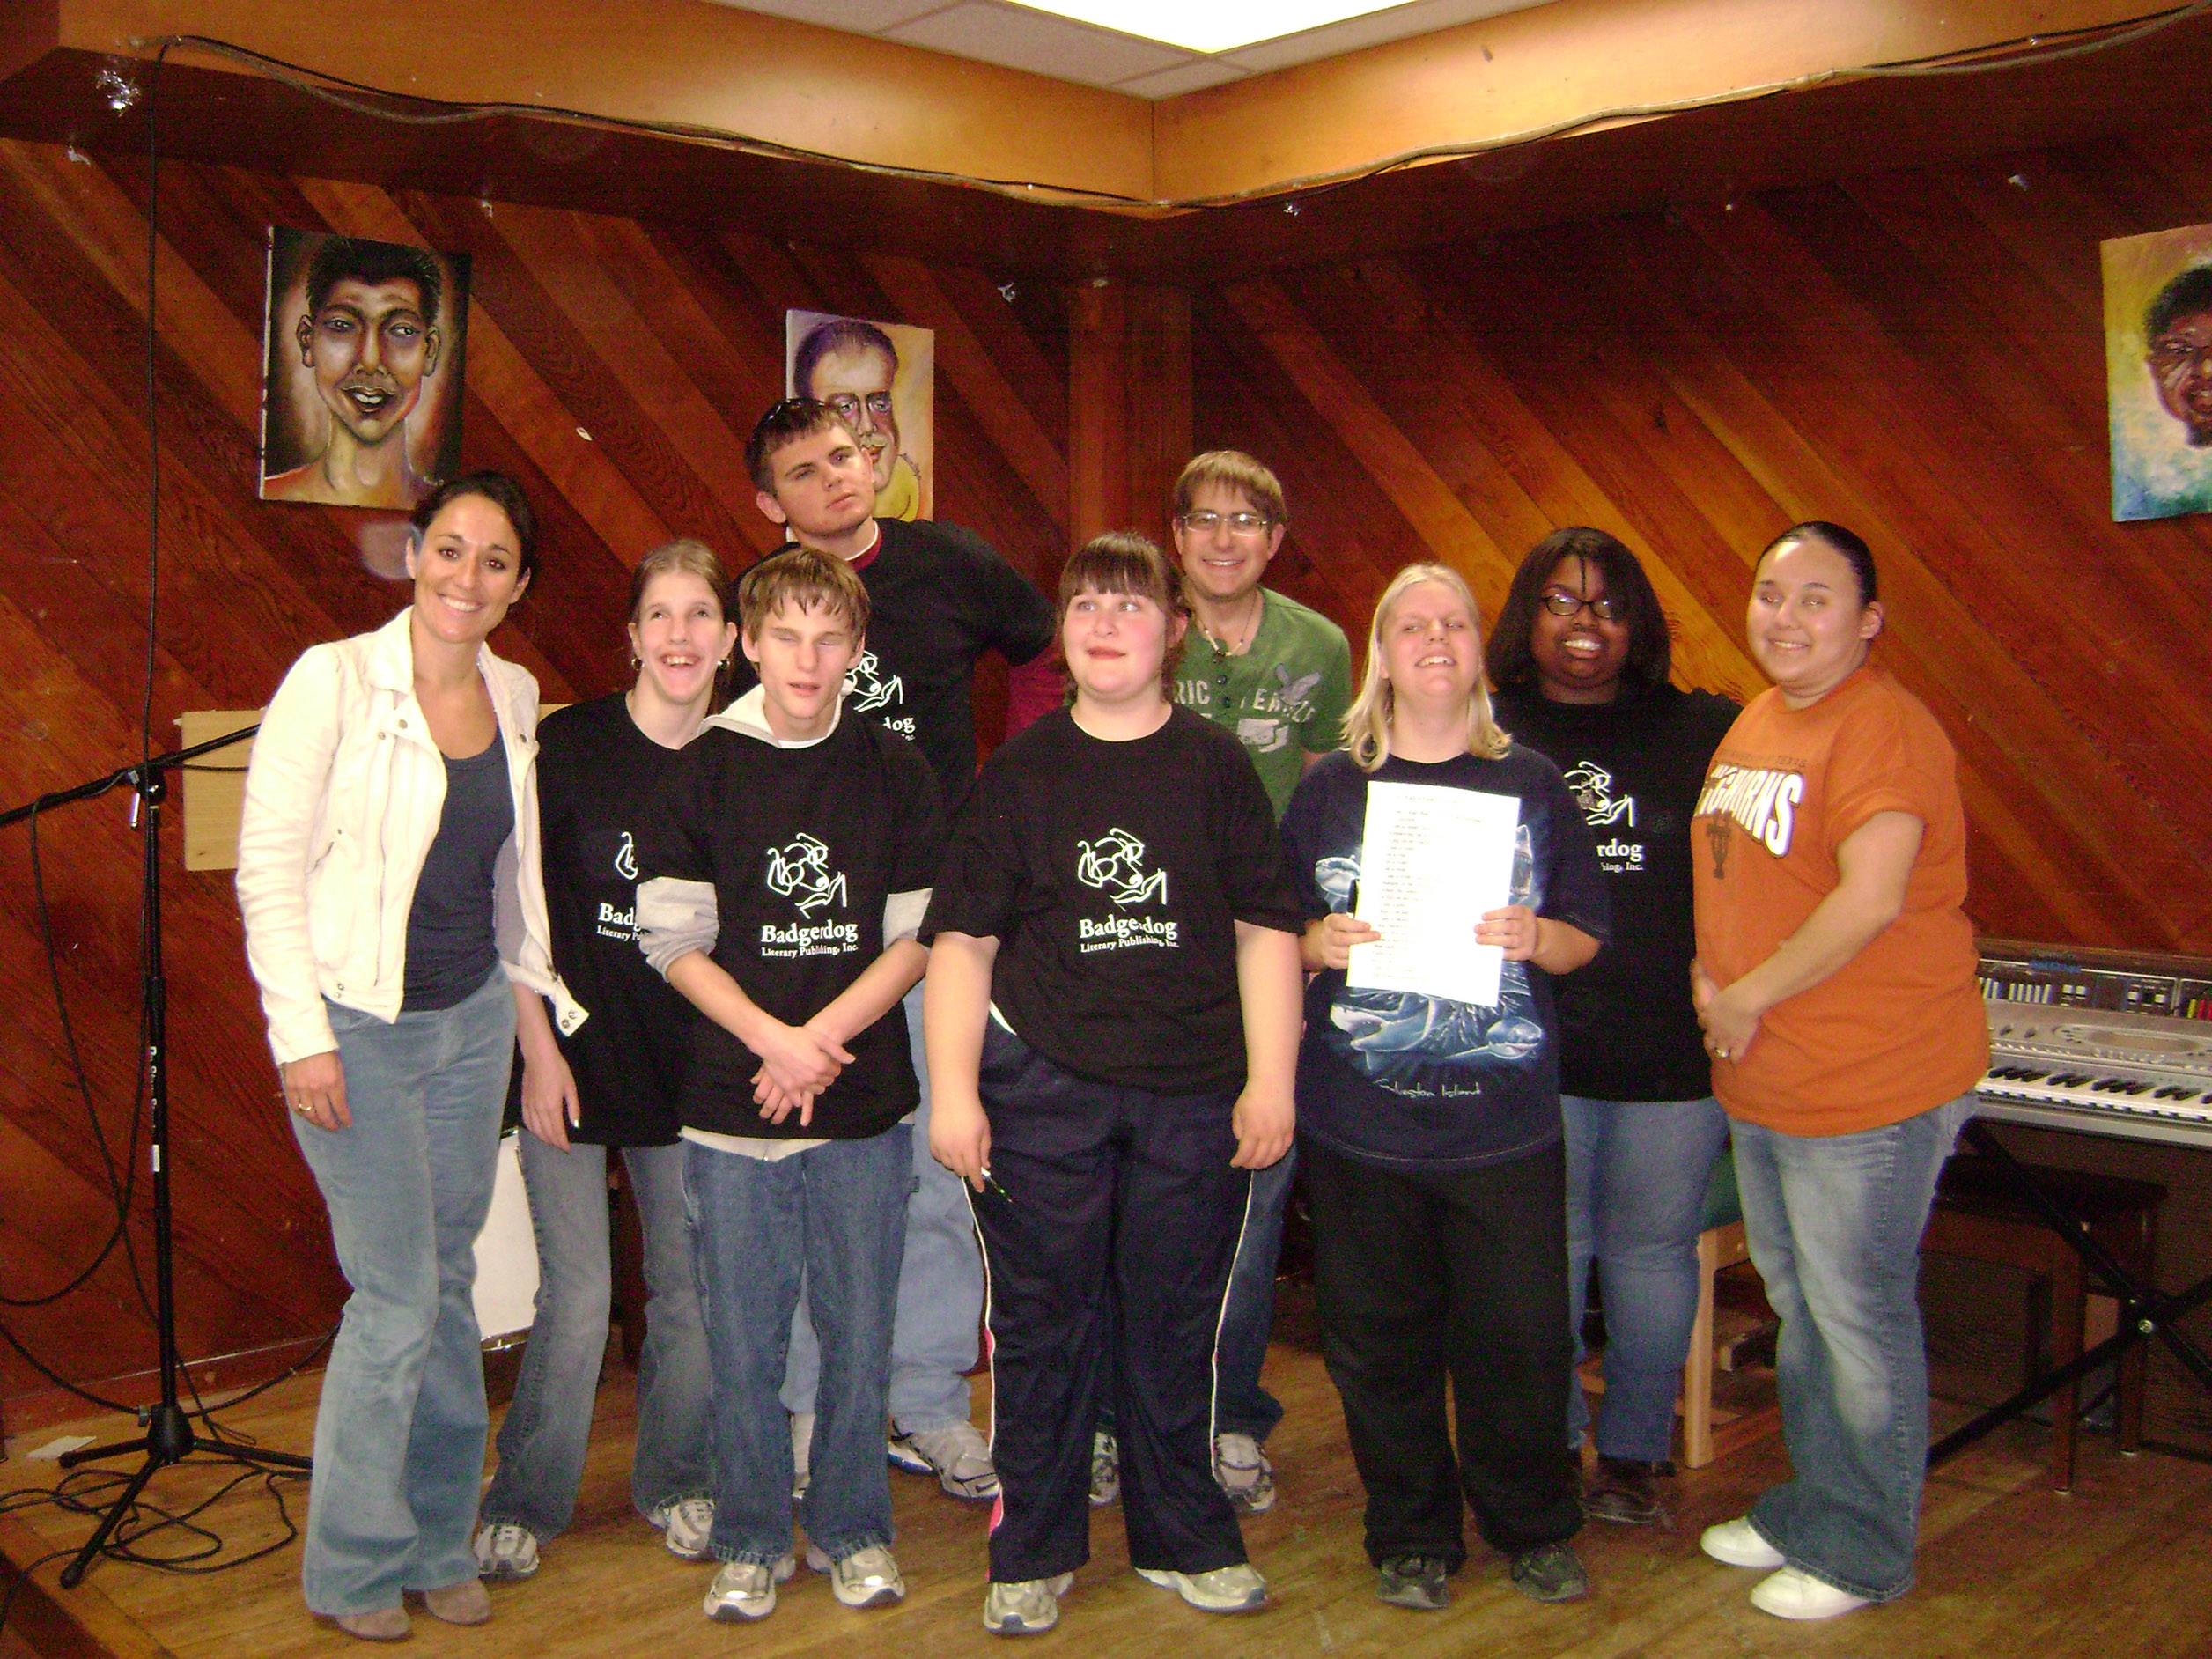 Badgerdog creative writing group at the Texas School for the Blind and Visually Impaired in 2009